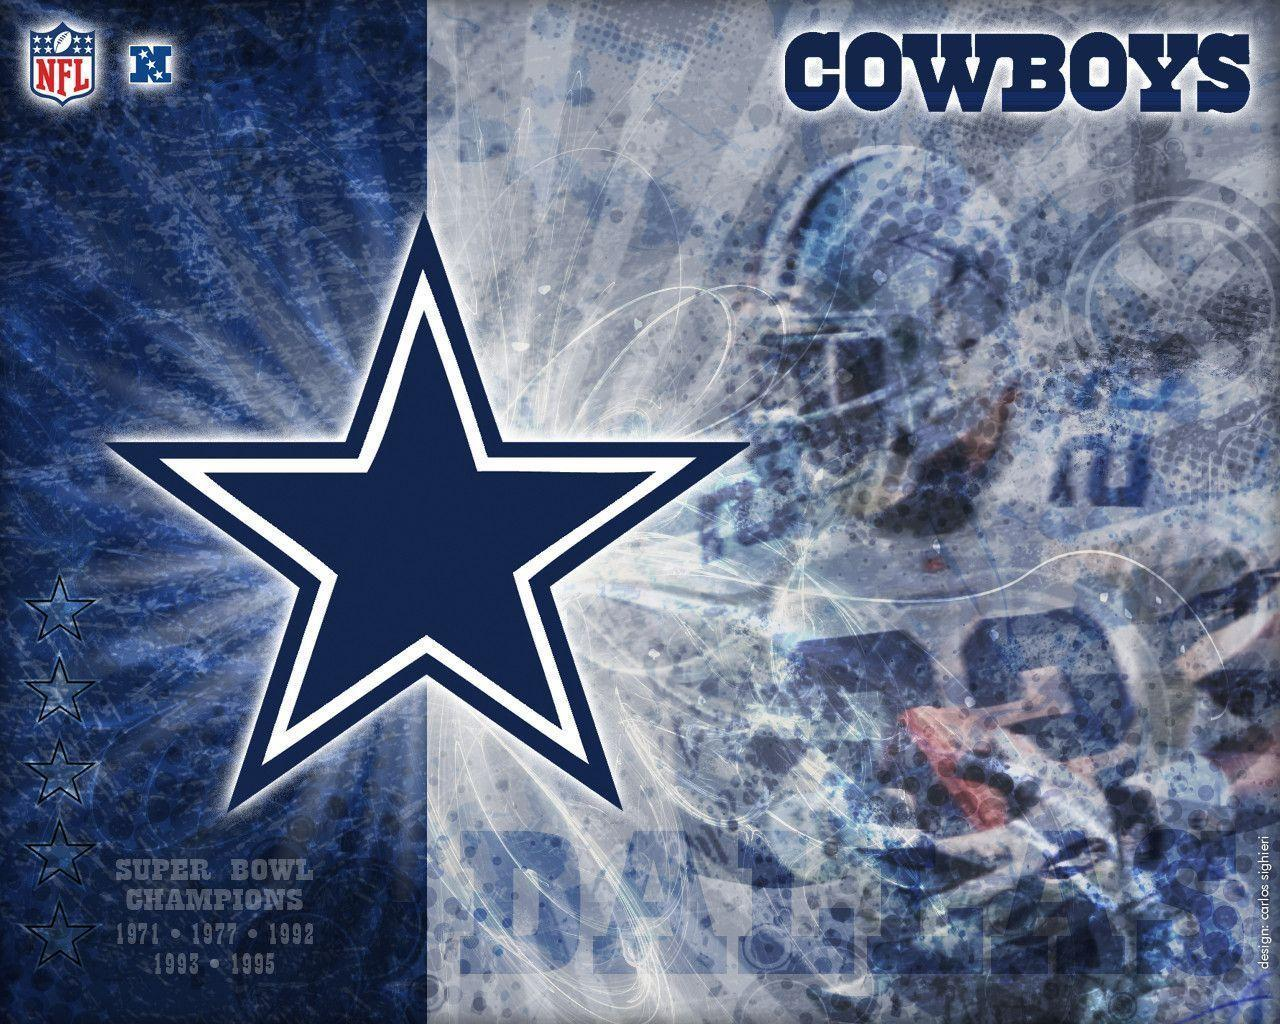 Free Cowboy Wallpapers - Wallpaper Cave